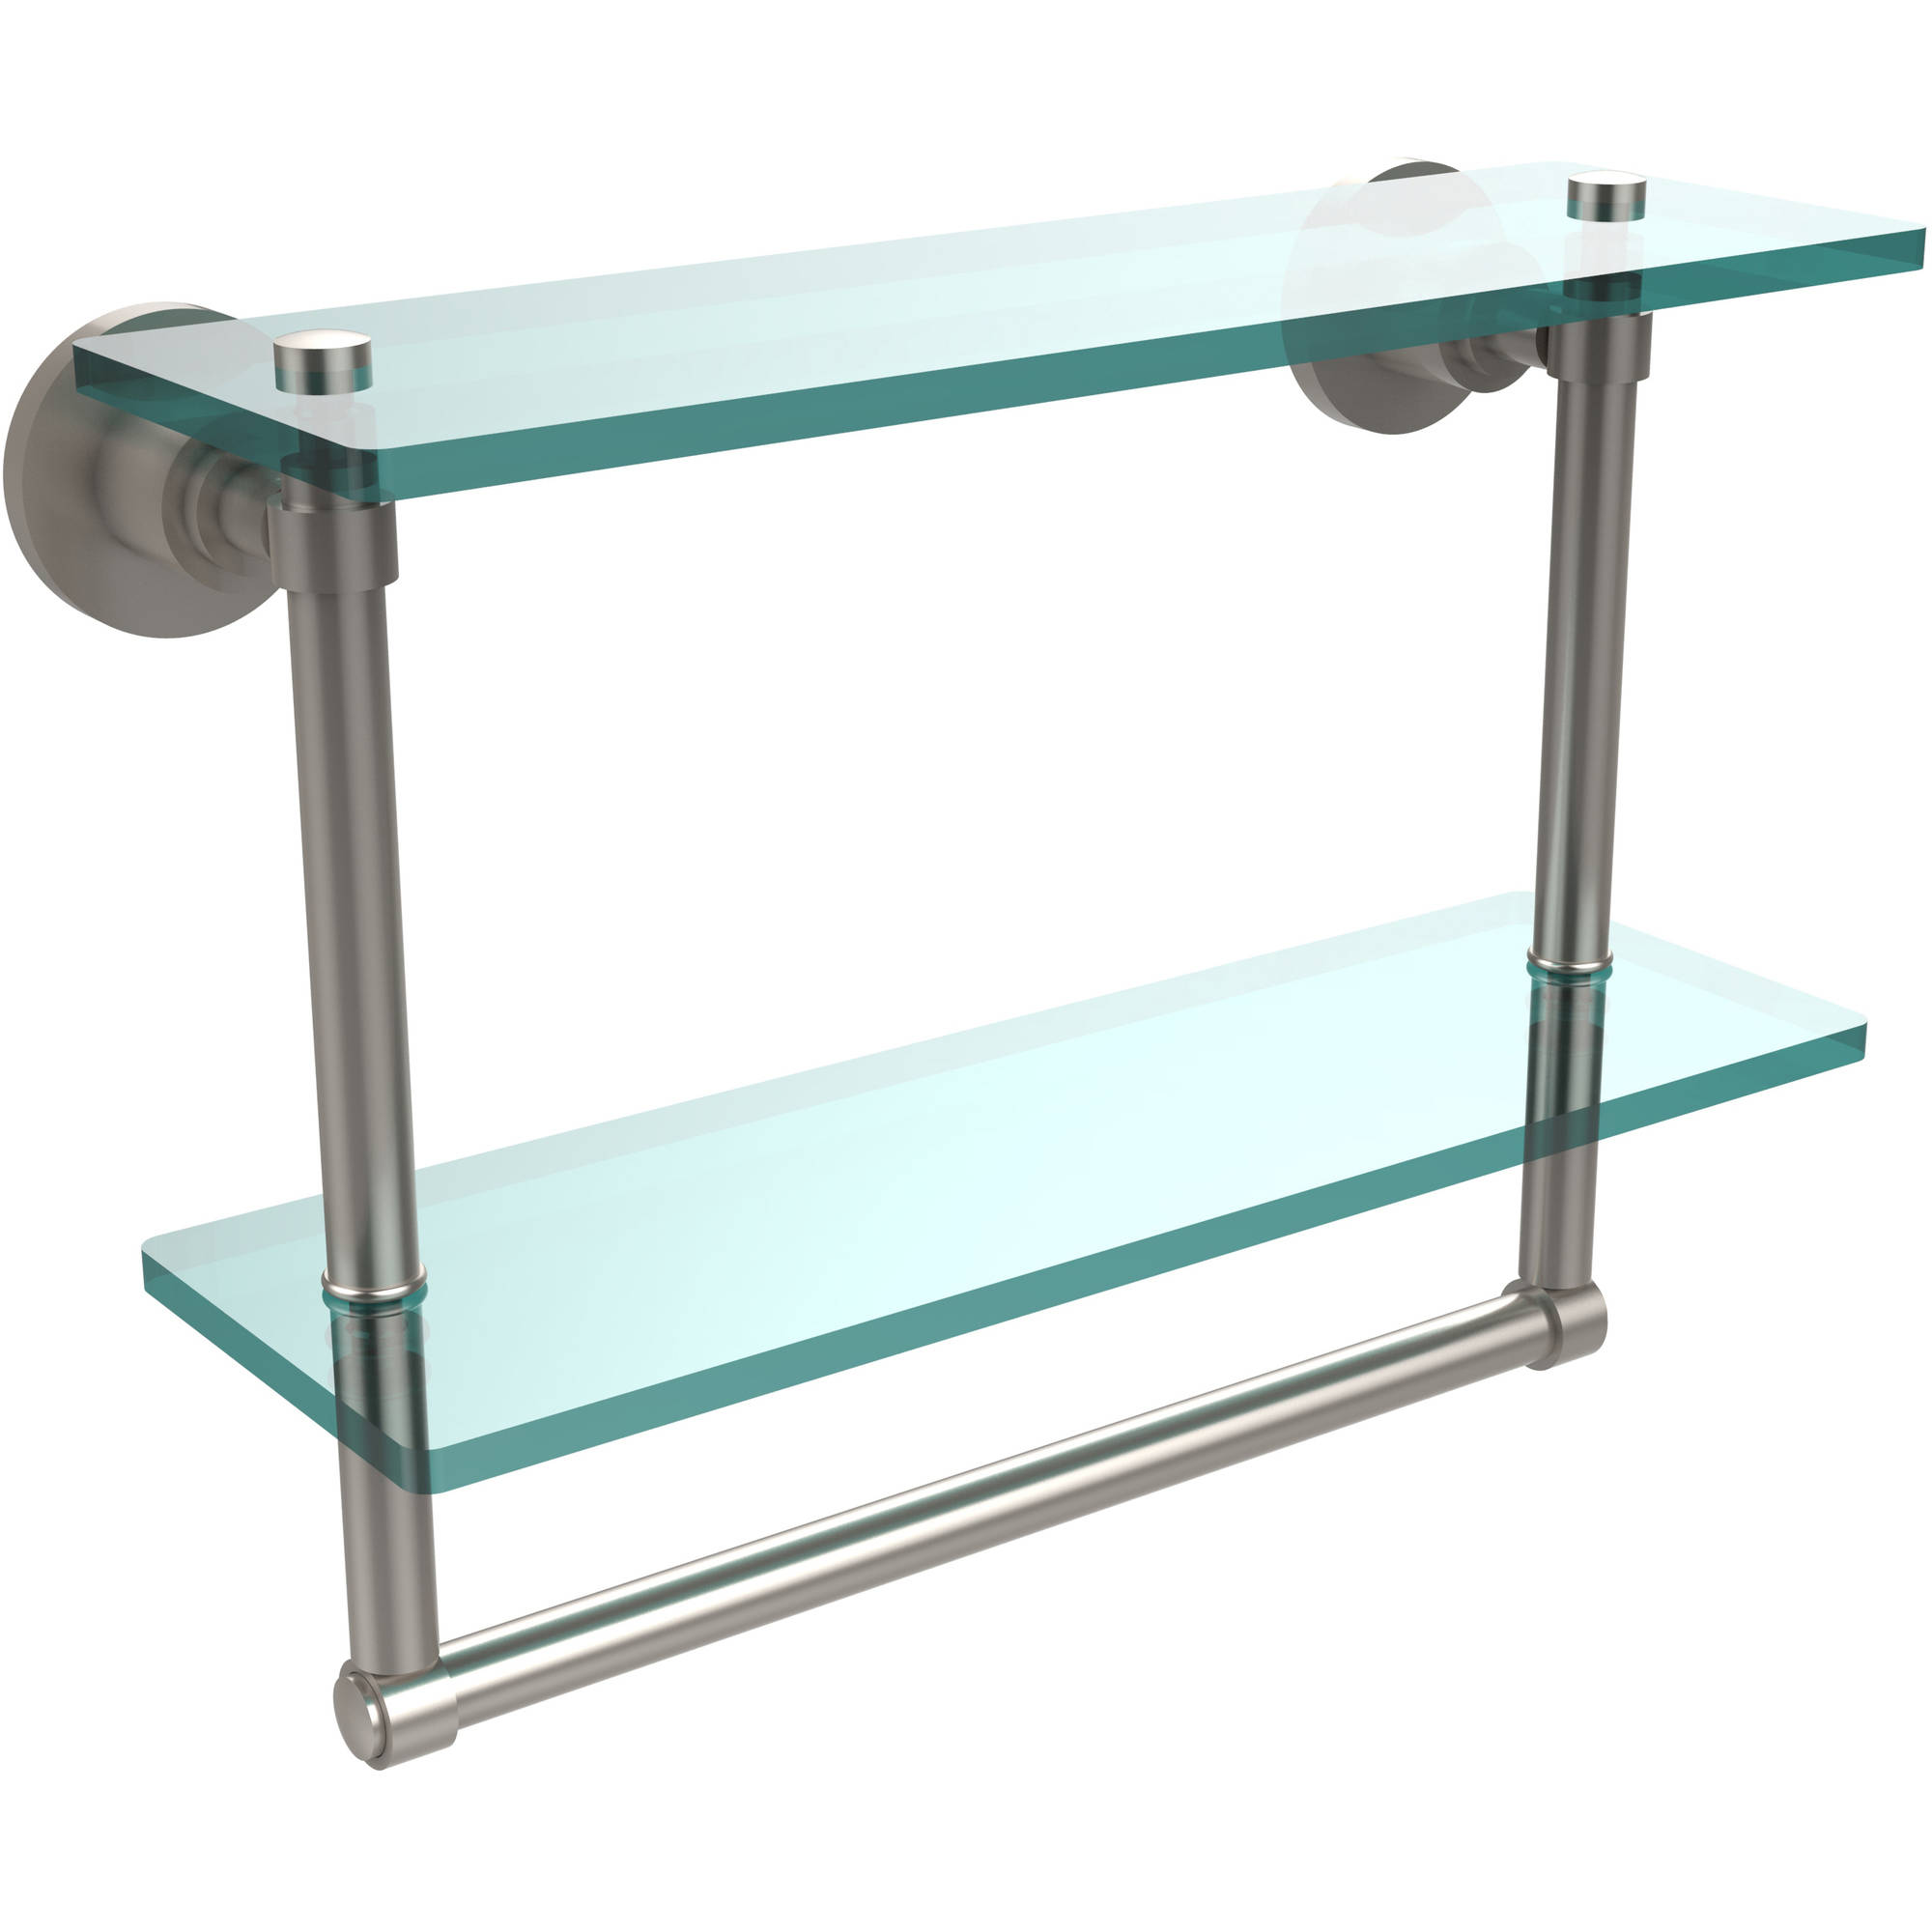 "Washing Square Collection 16"" 2-Tiered Glass Shelf with Integrated Towel Bar (Build to Order)"